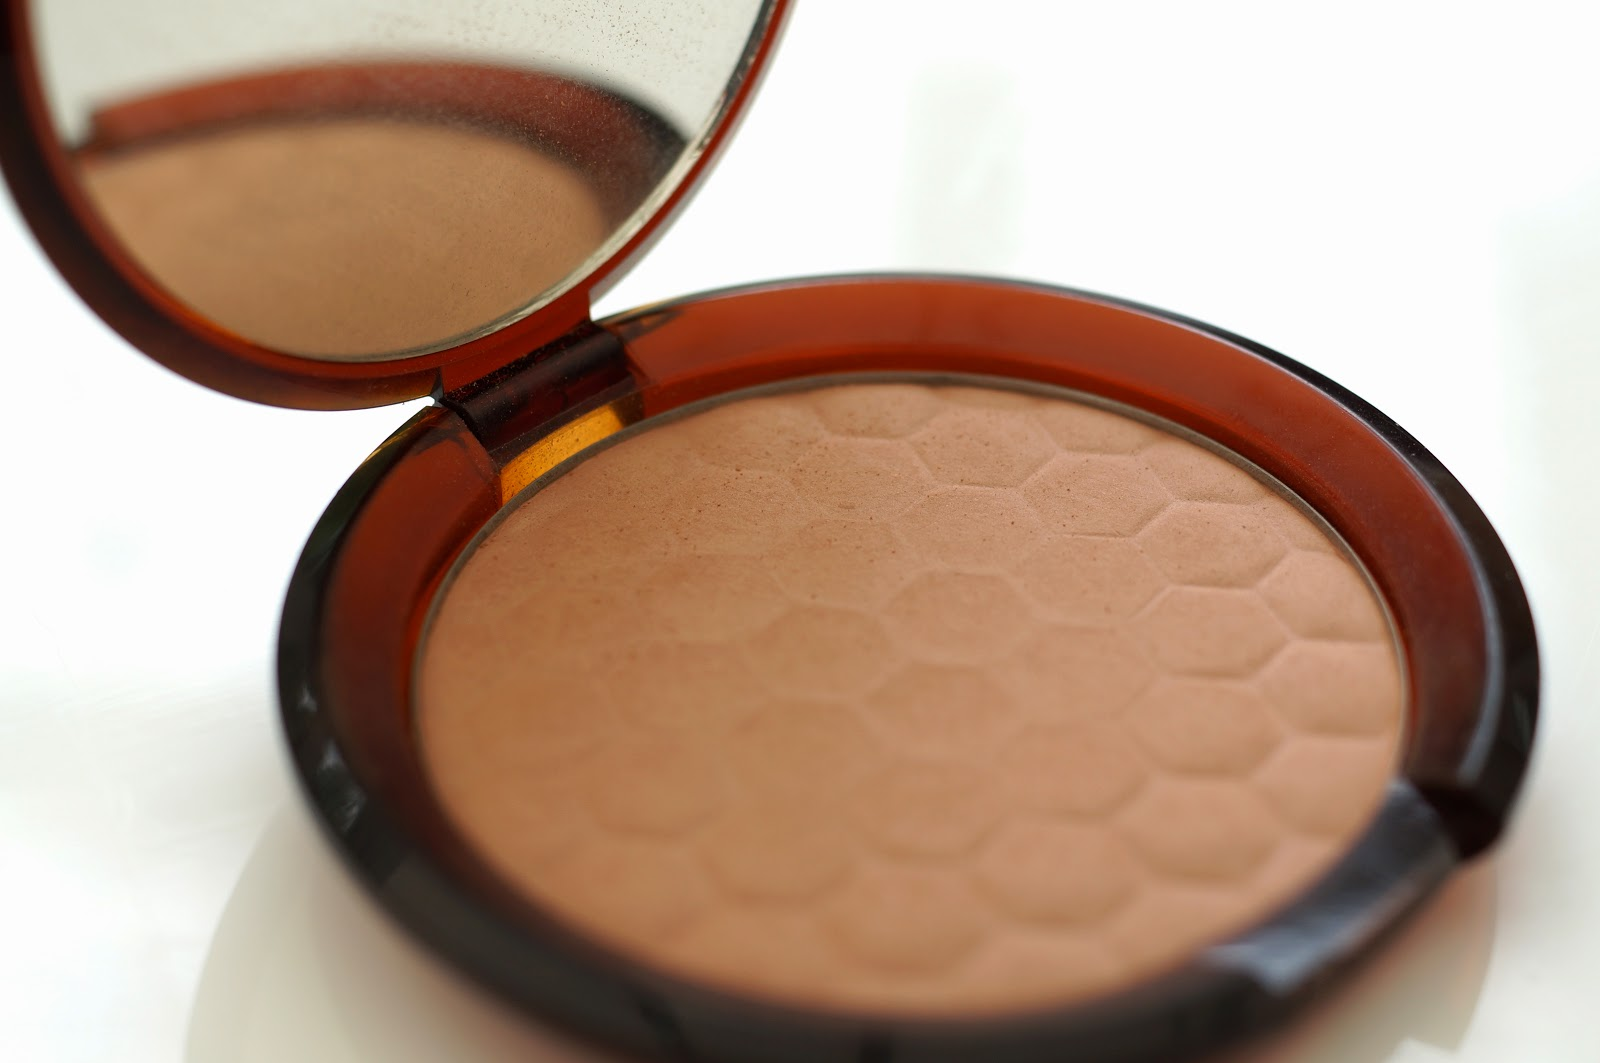 Honey Bronze Bronzing Powder The Body Shop